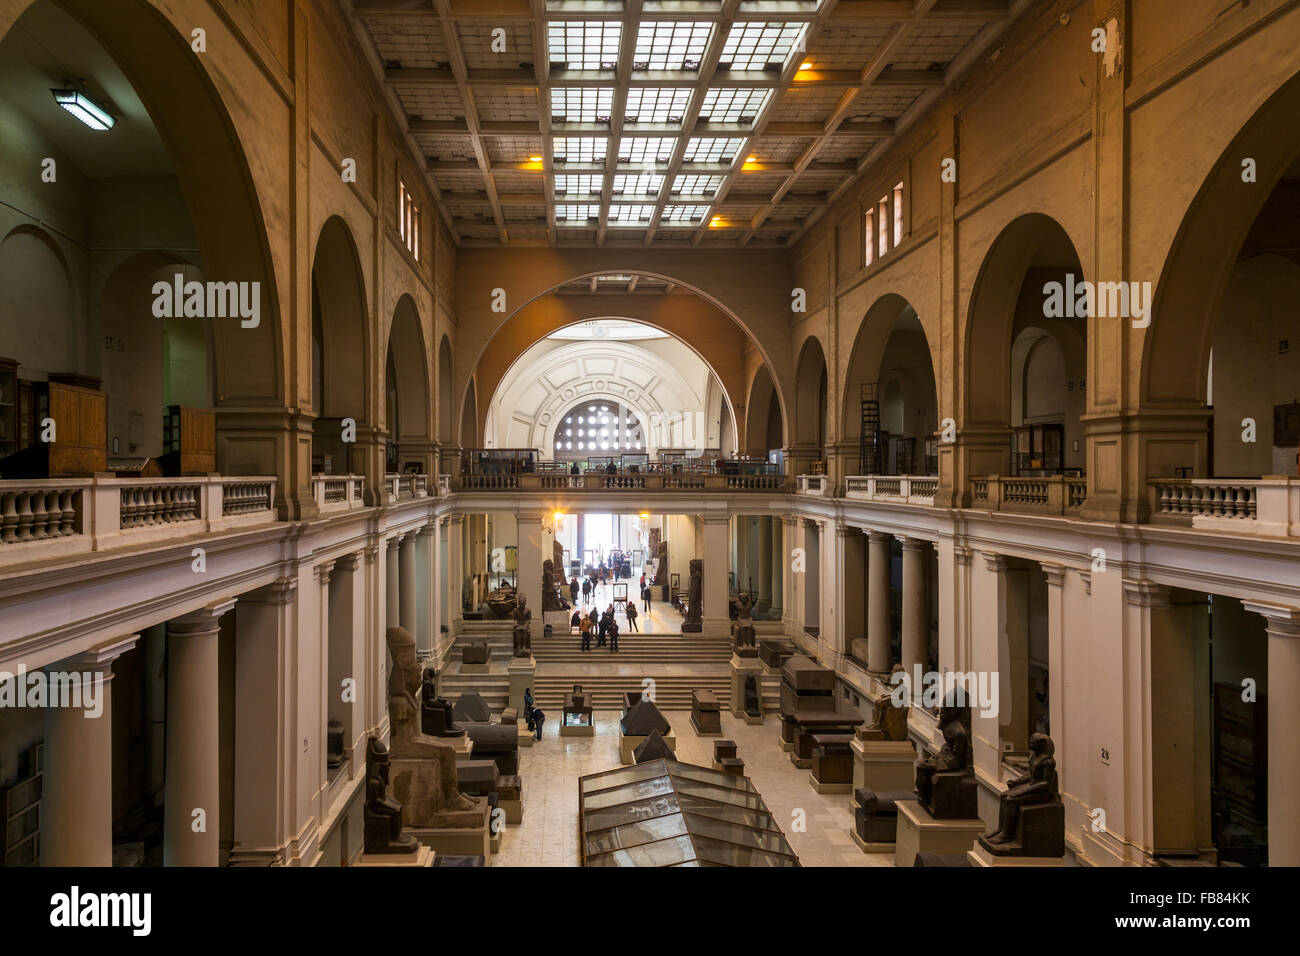 egypt interior stock photos & egypt interior stock images - alamy